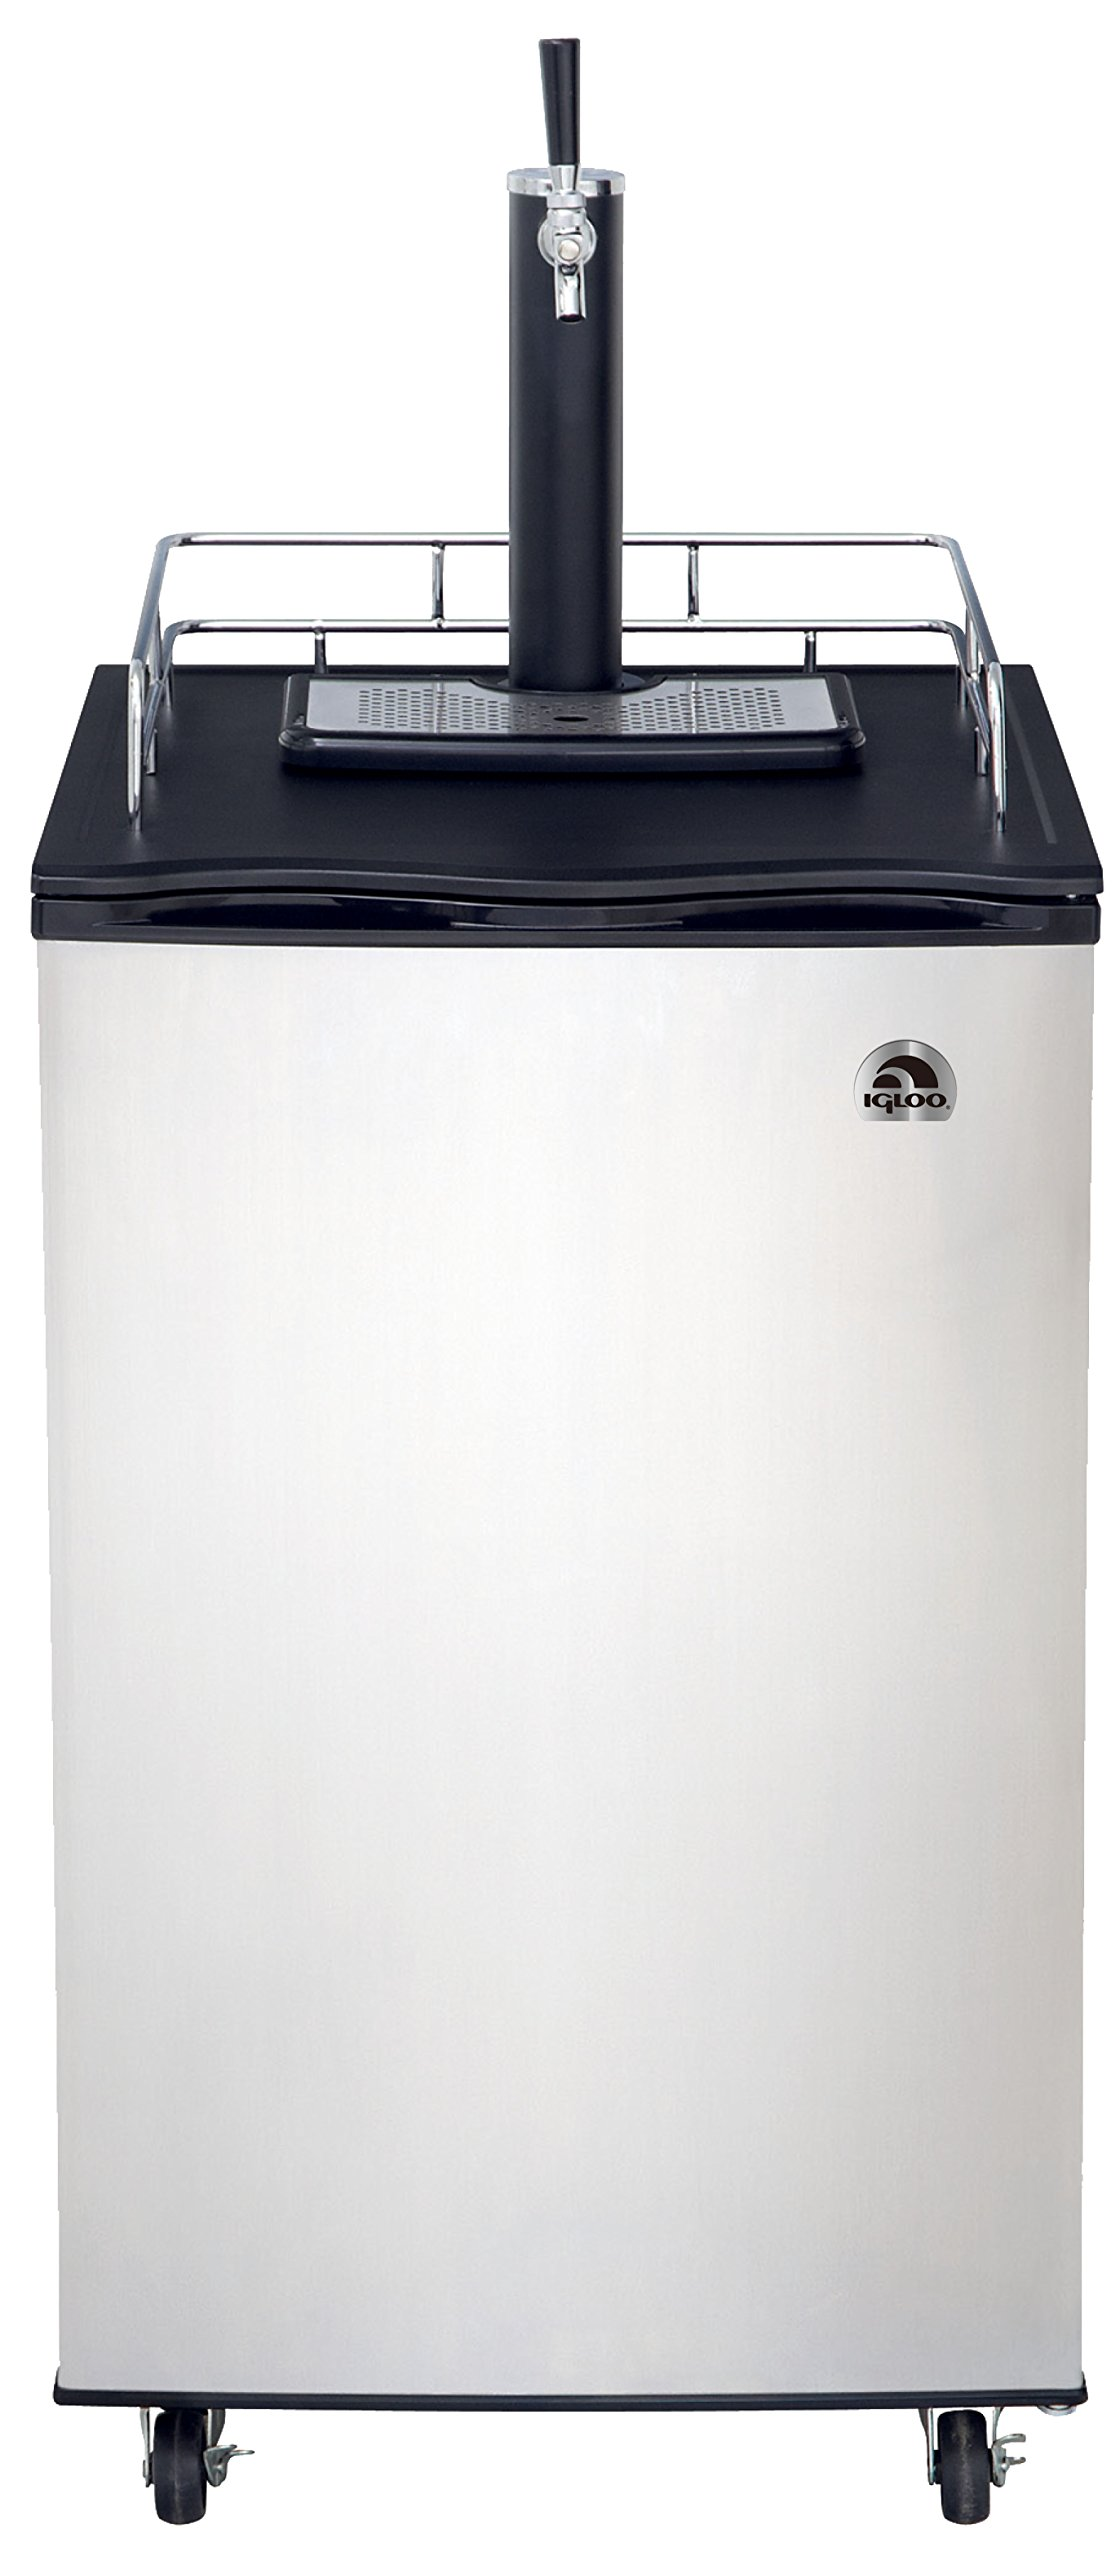 Igloo FRB200C 6 Cubic Feet Beer Kegerator with CO2 Tank and Kit, Stainless Steel